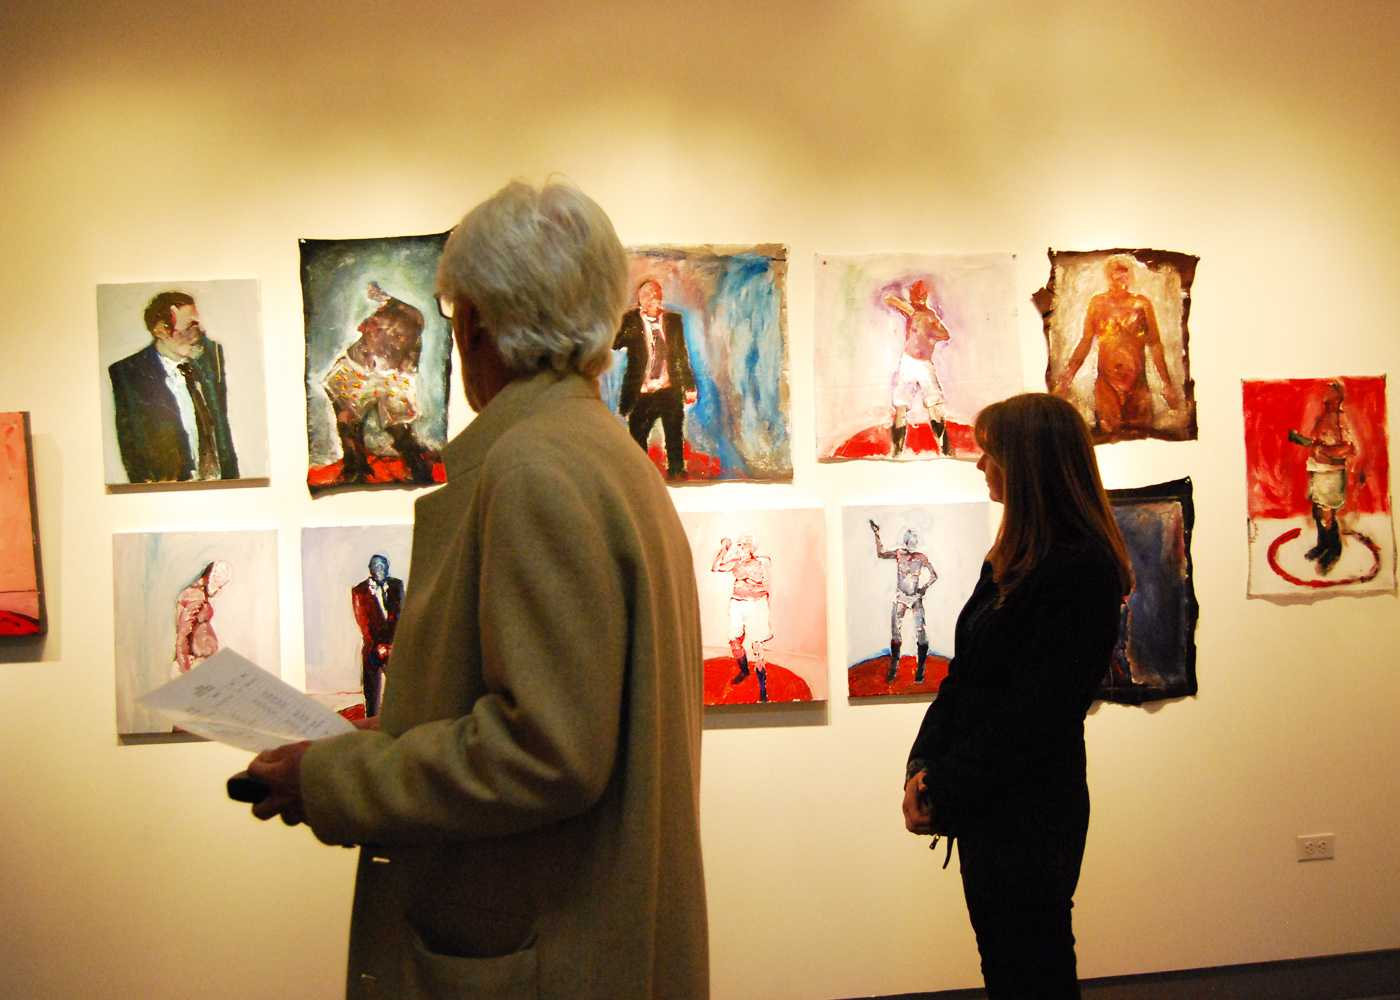 Local art patrons browse the featured works of the Dynamic Gestures exhibit at the Mesa Art Gallery.